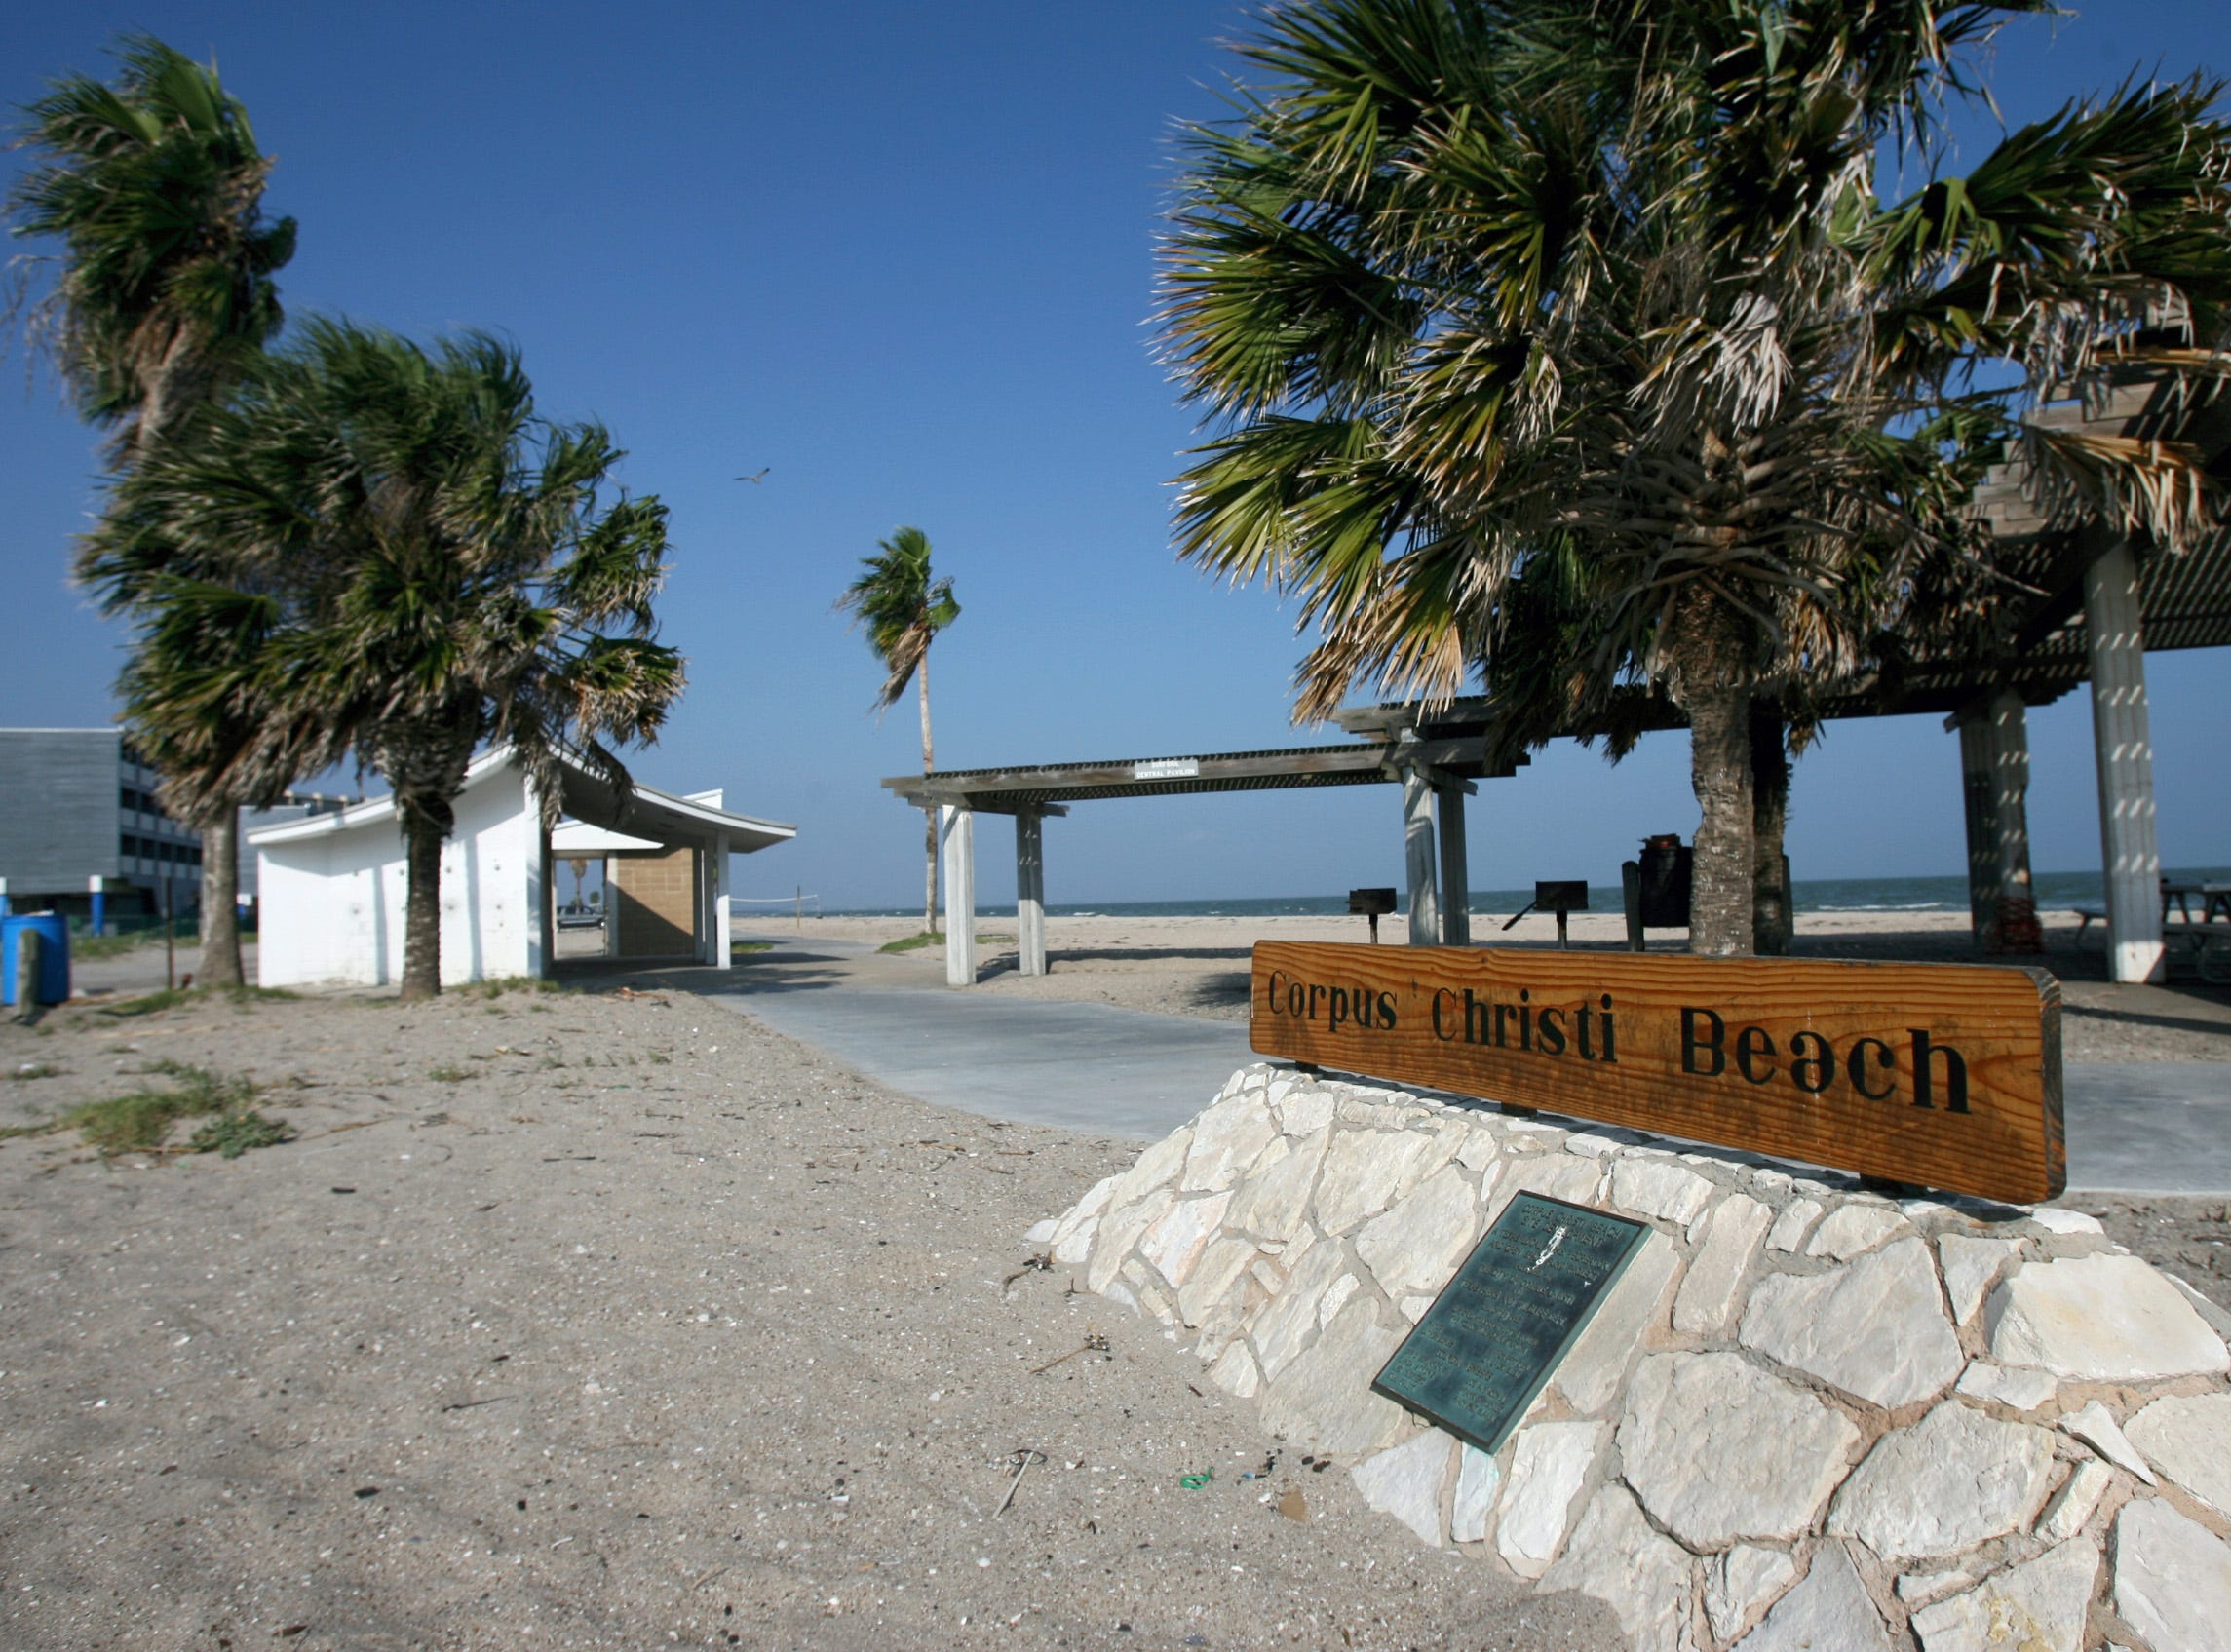 North Beach was officially named Corpus Christi Beach when this image was taken in October 2007.